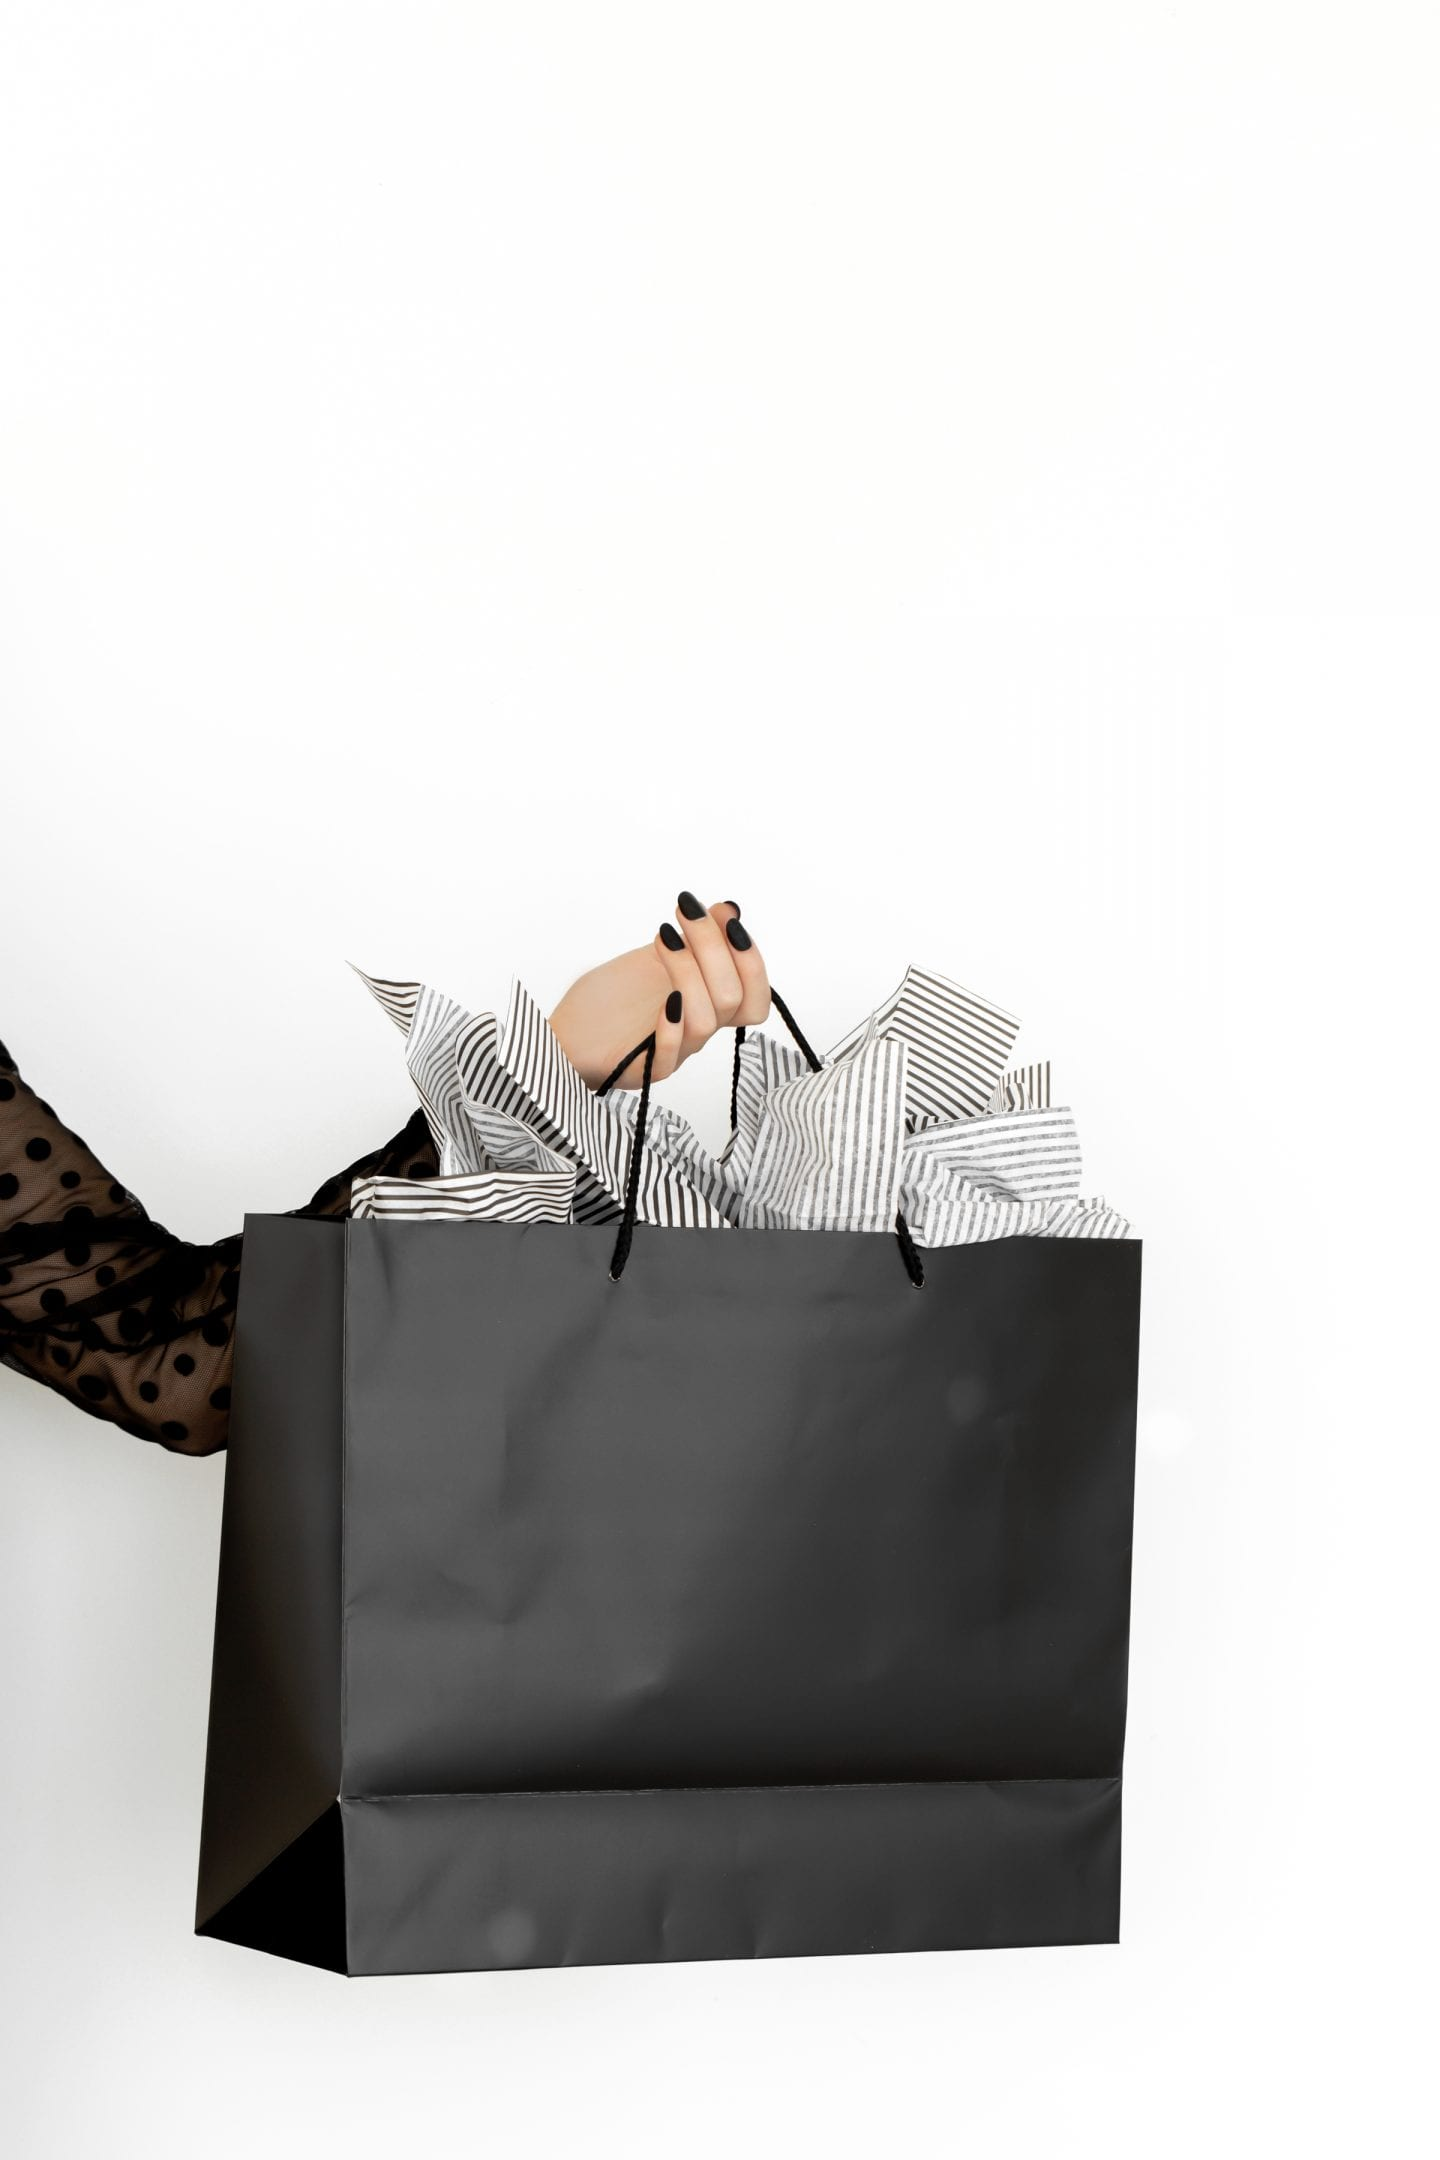 White woman holding a Black shopping bag with painted black nails